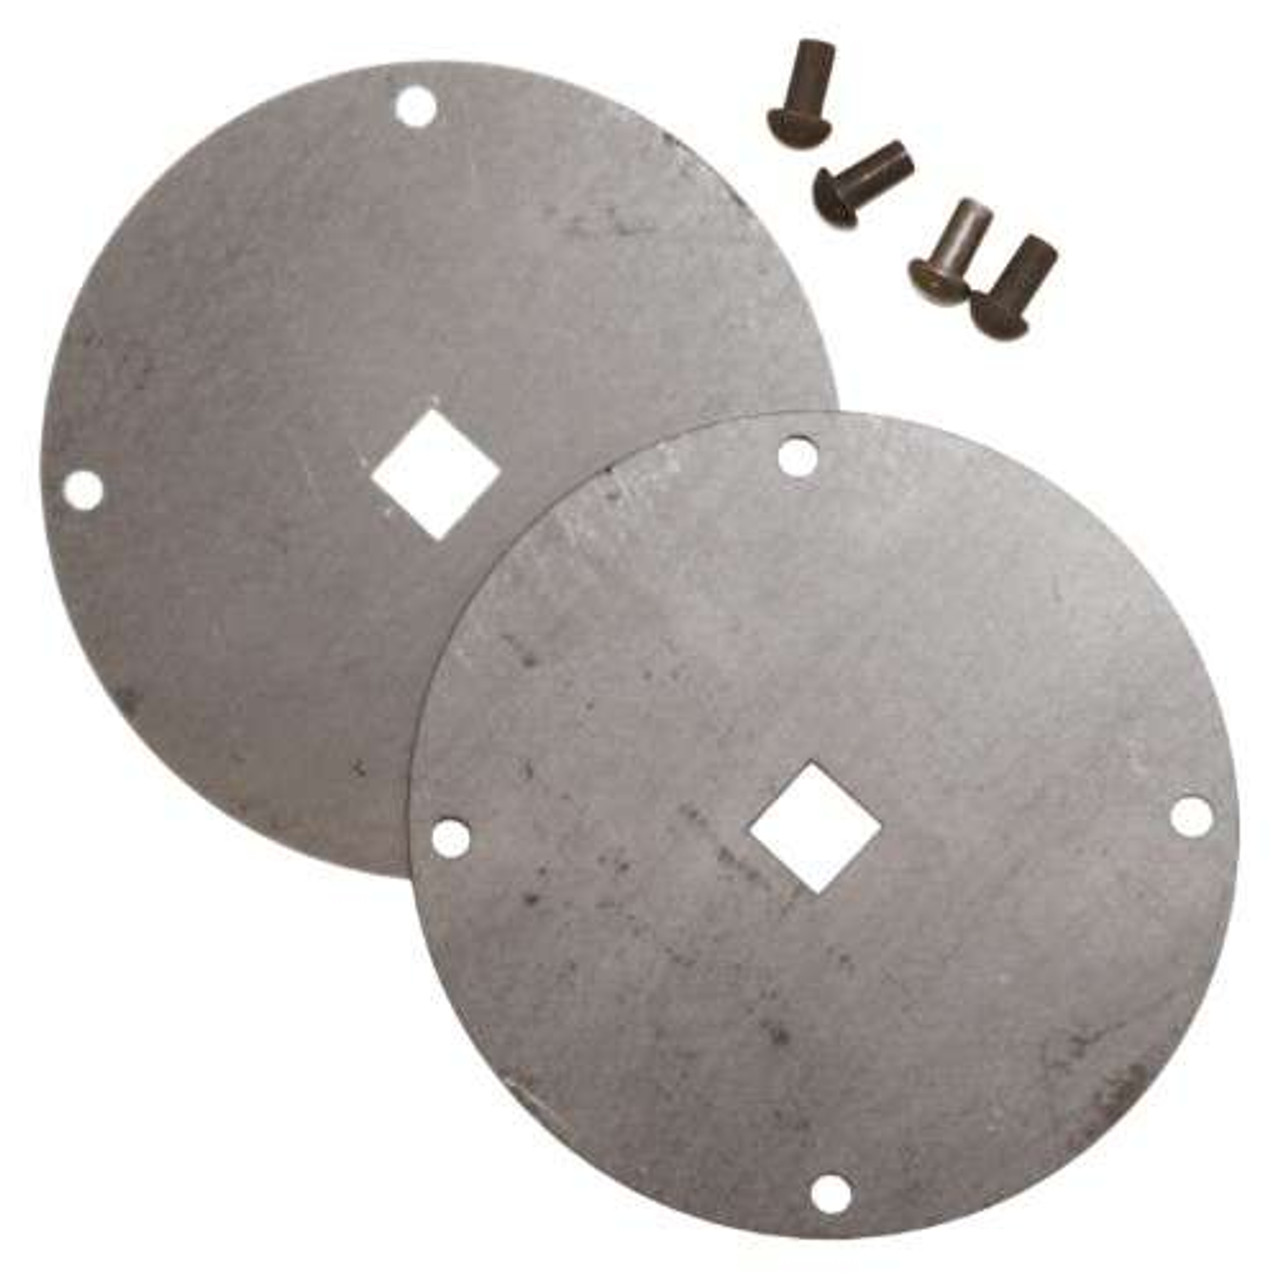 Tractor Seat Repair Kit with Rivets